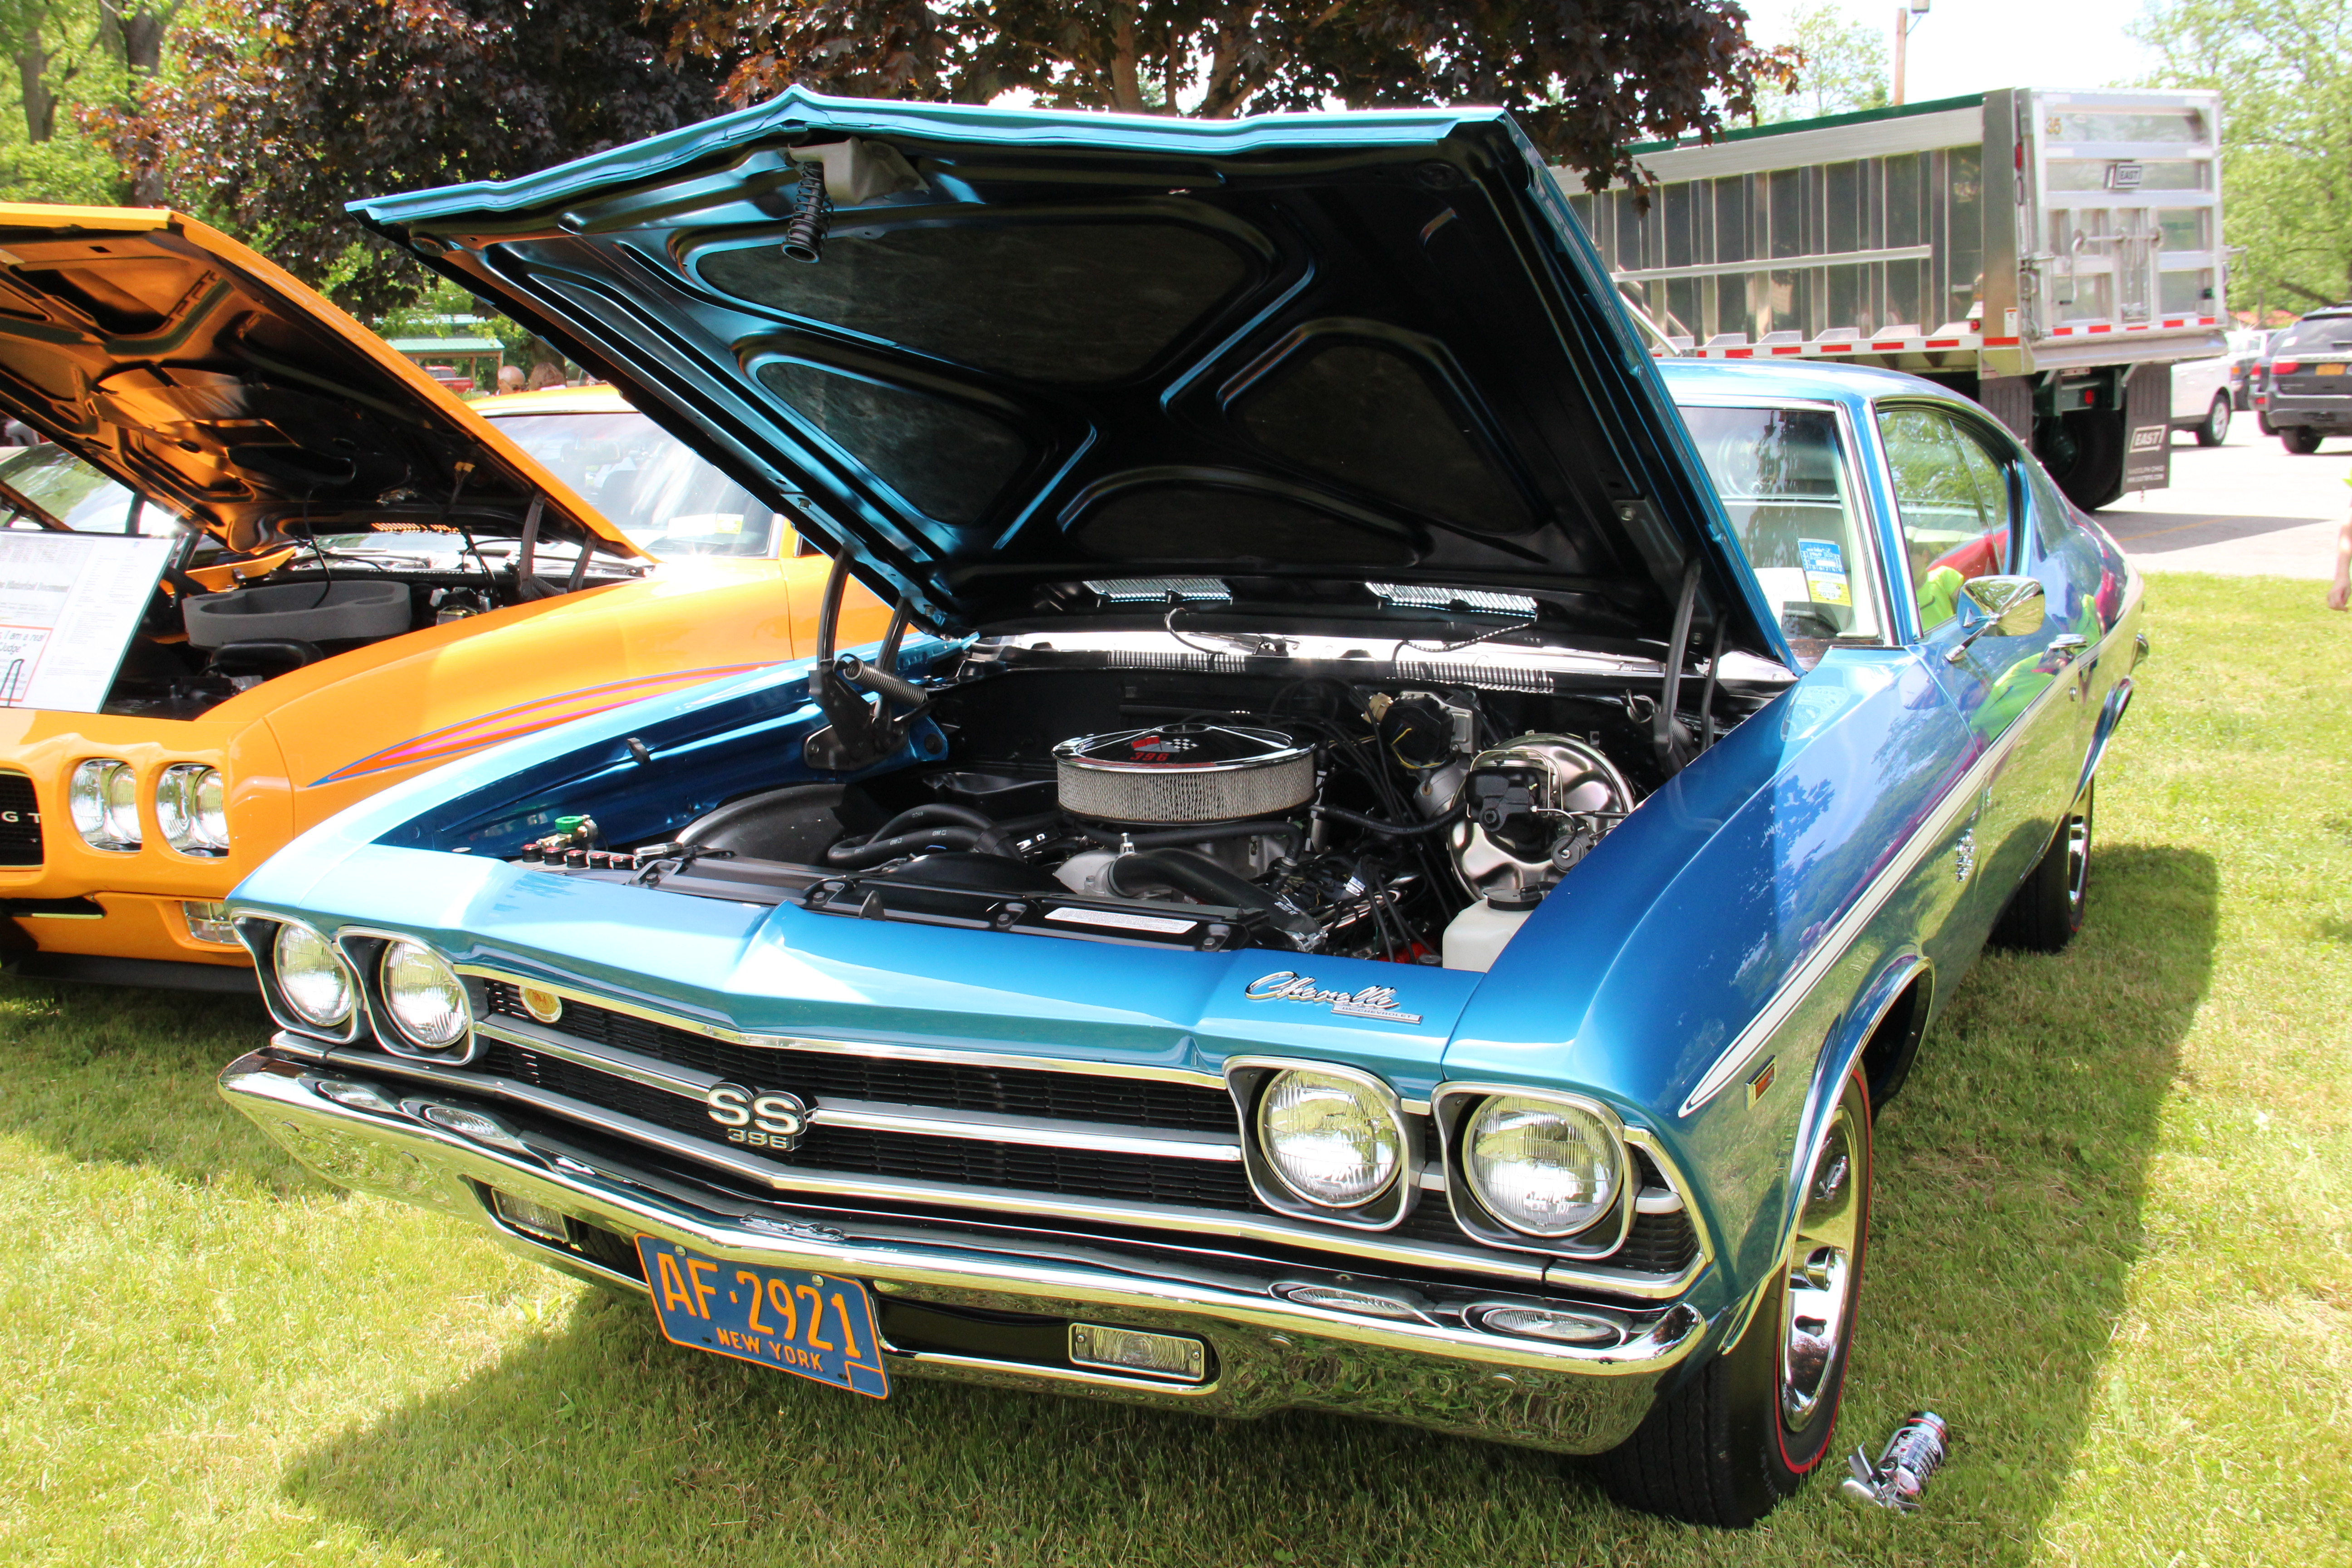 IMG_0621-Class-1A-Mark-Sue-Yearke-1969-Chevrolet-Chevelle-SS396-LER